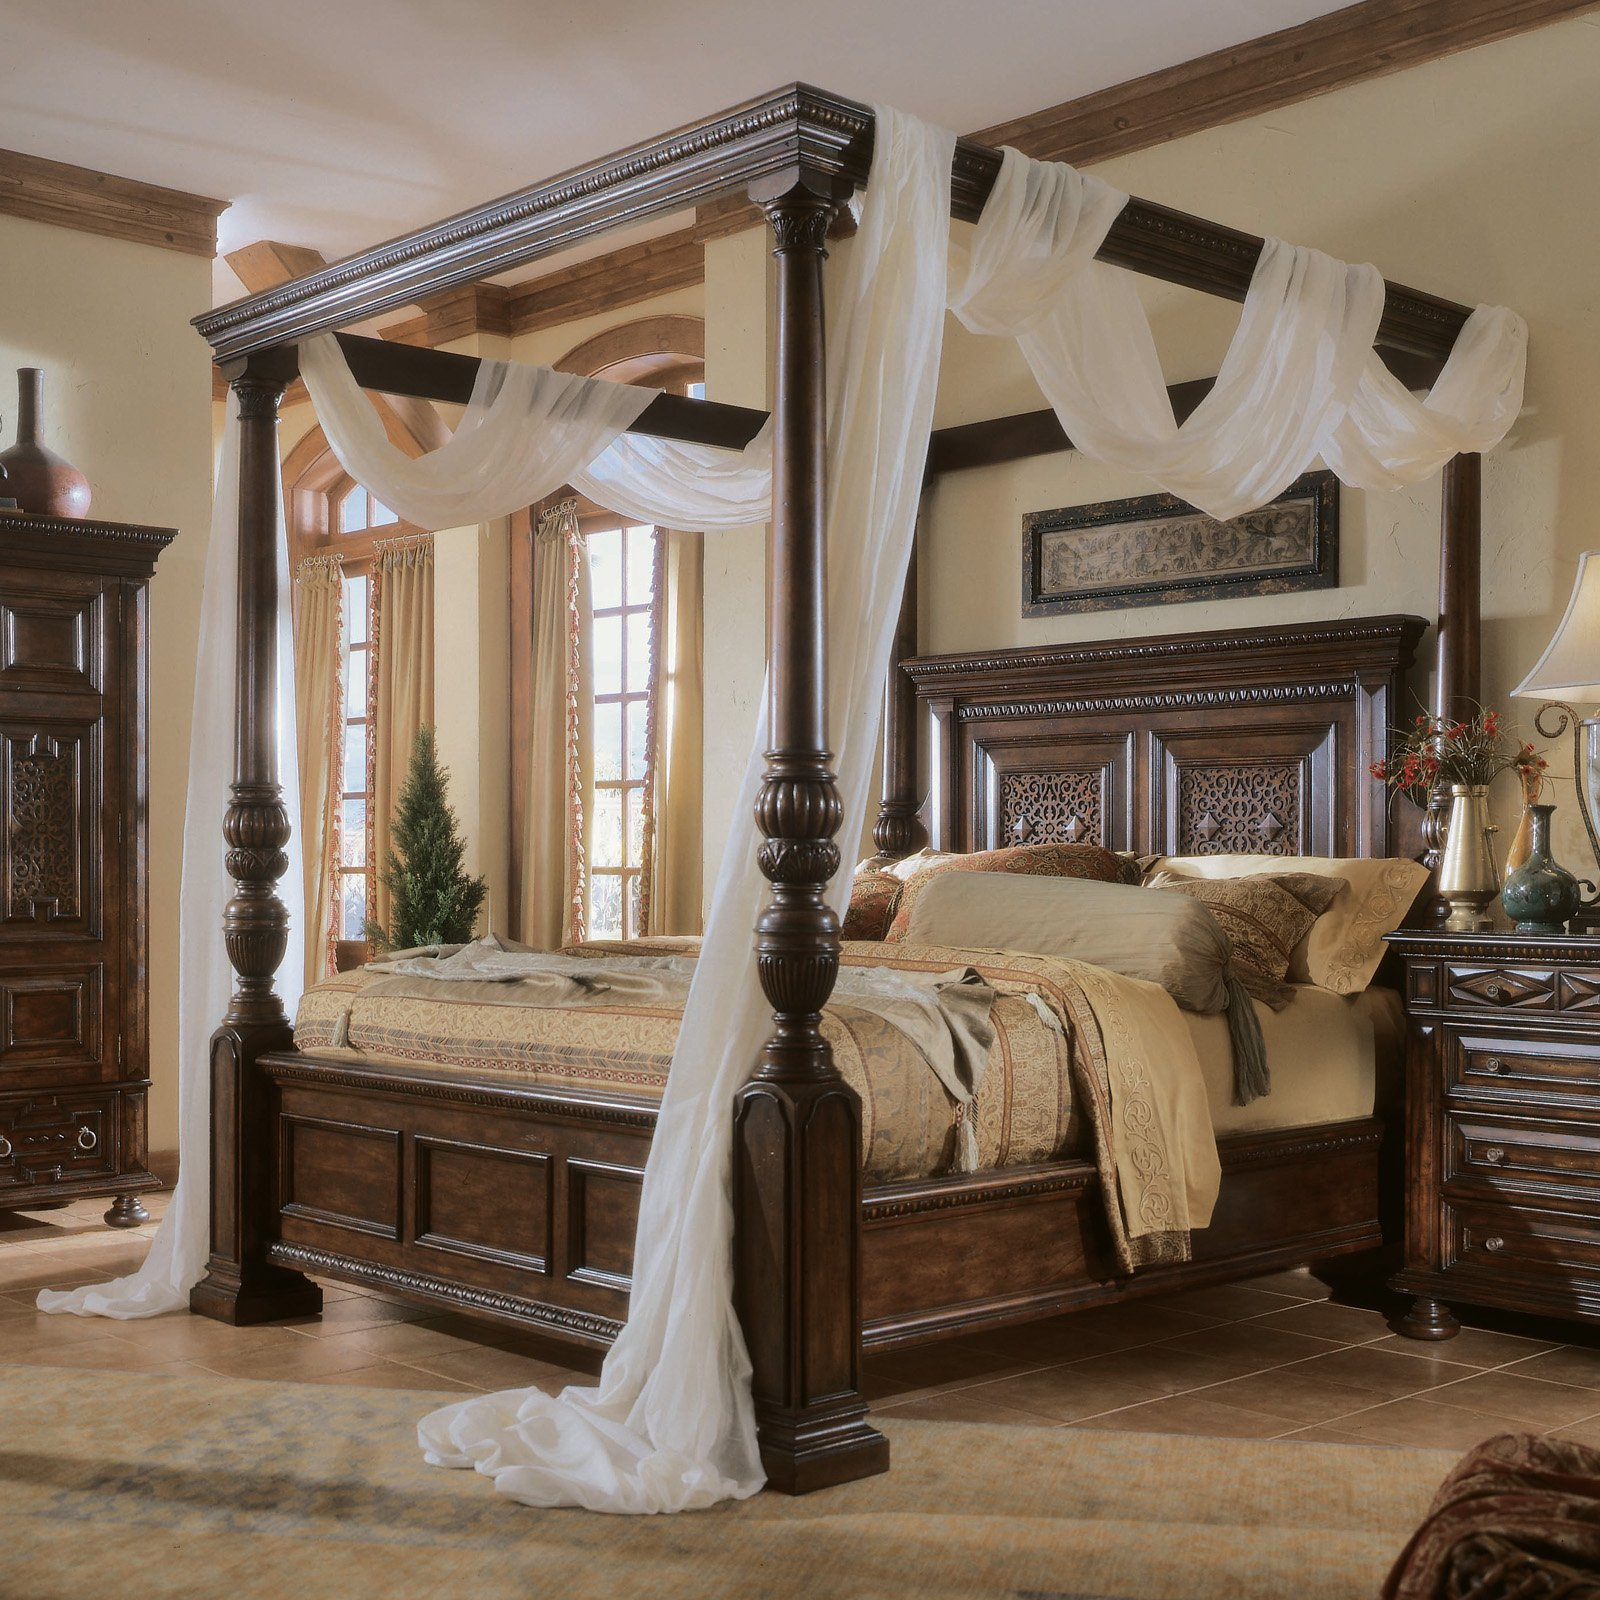 Gorgeous Bedroom Fill With King Size Canopy Bed: Luxury Rug And King Size  Canopy Bed